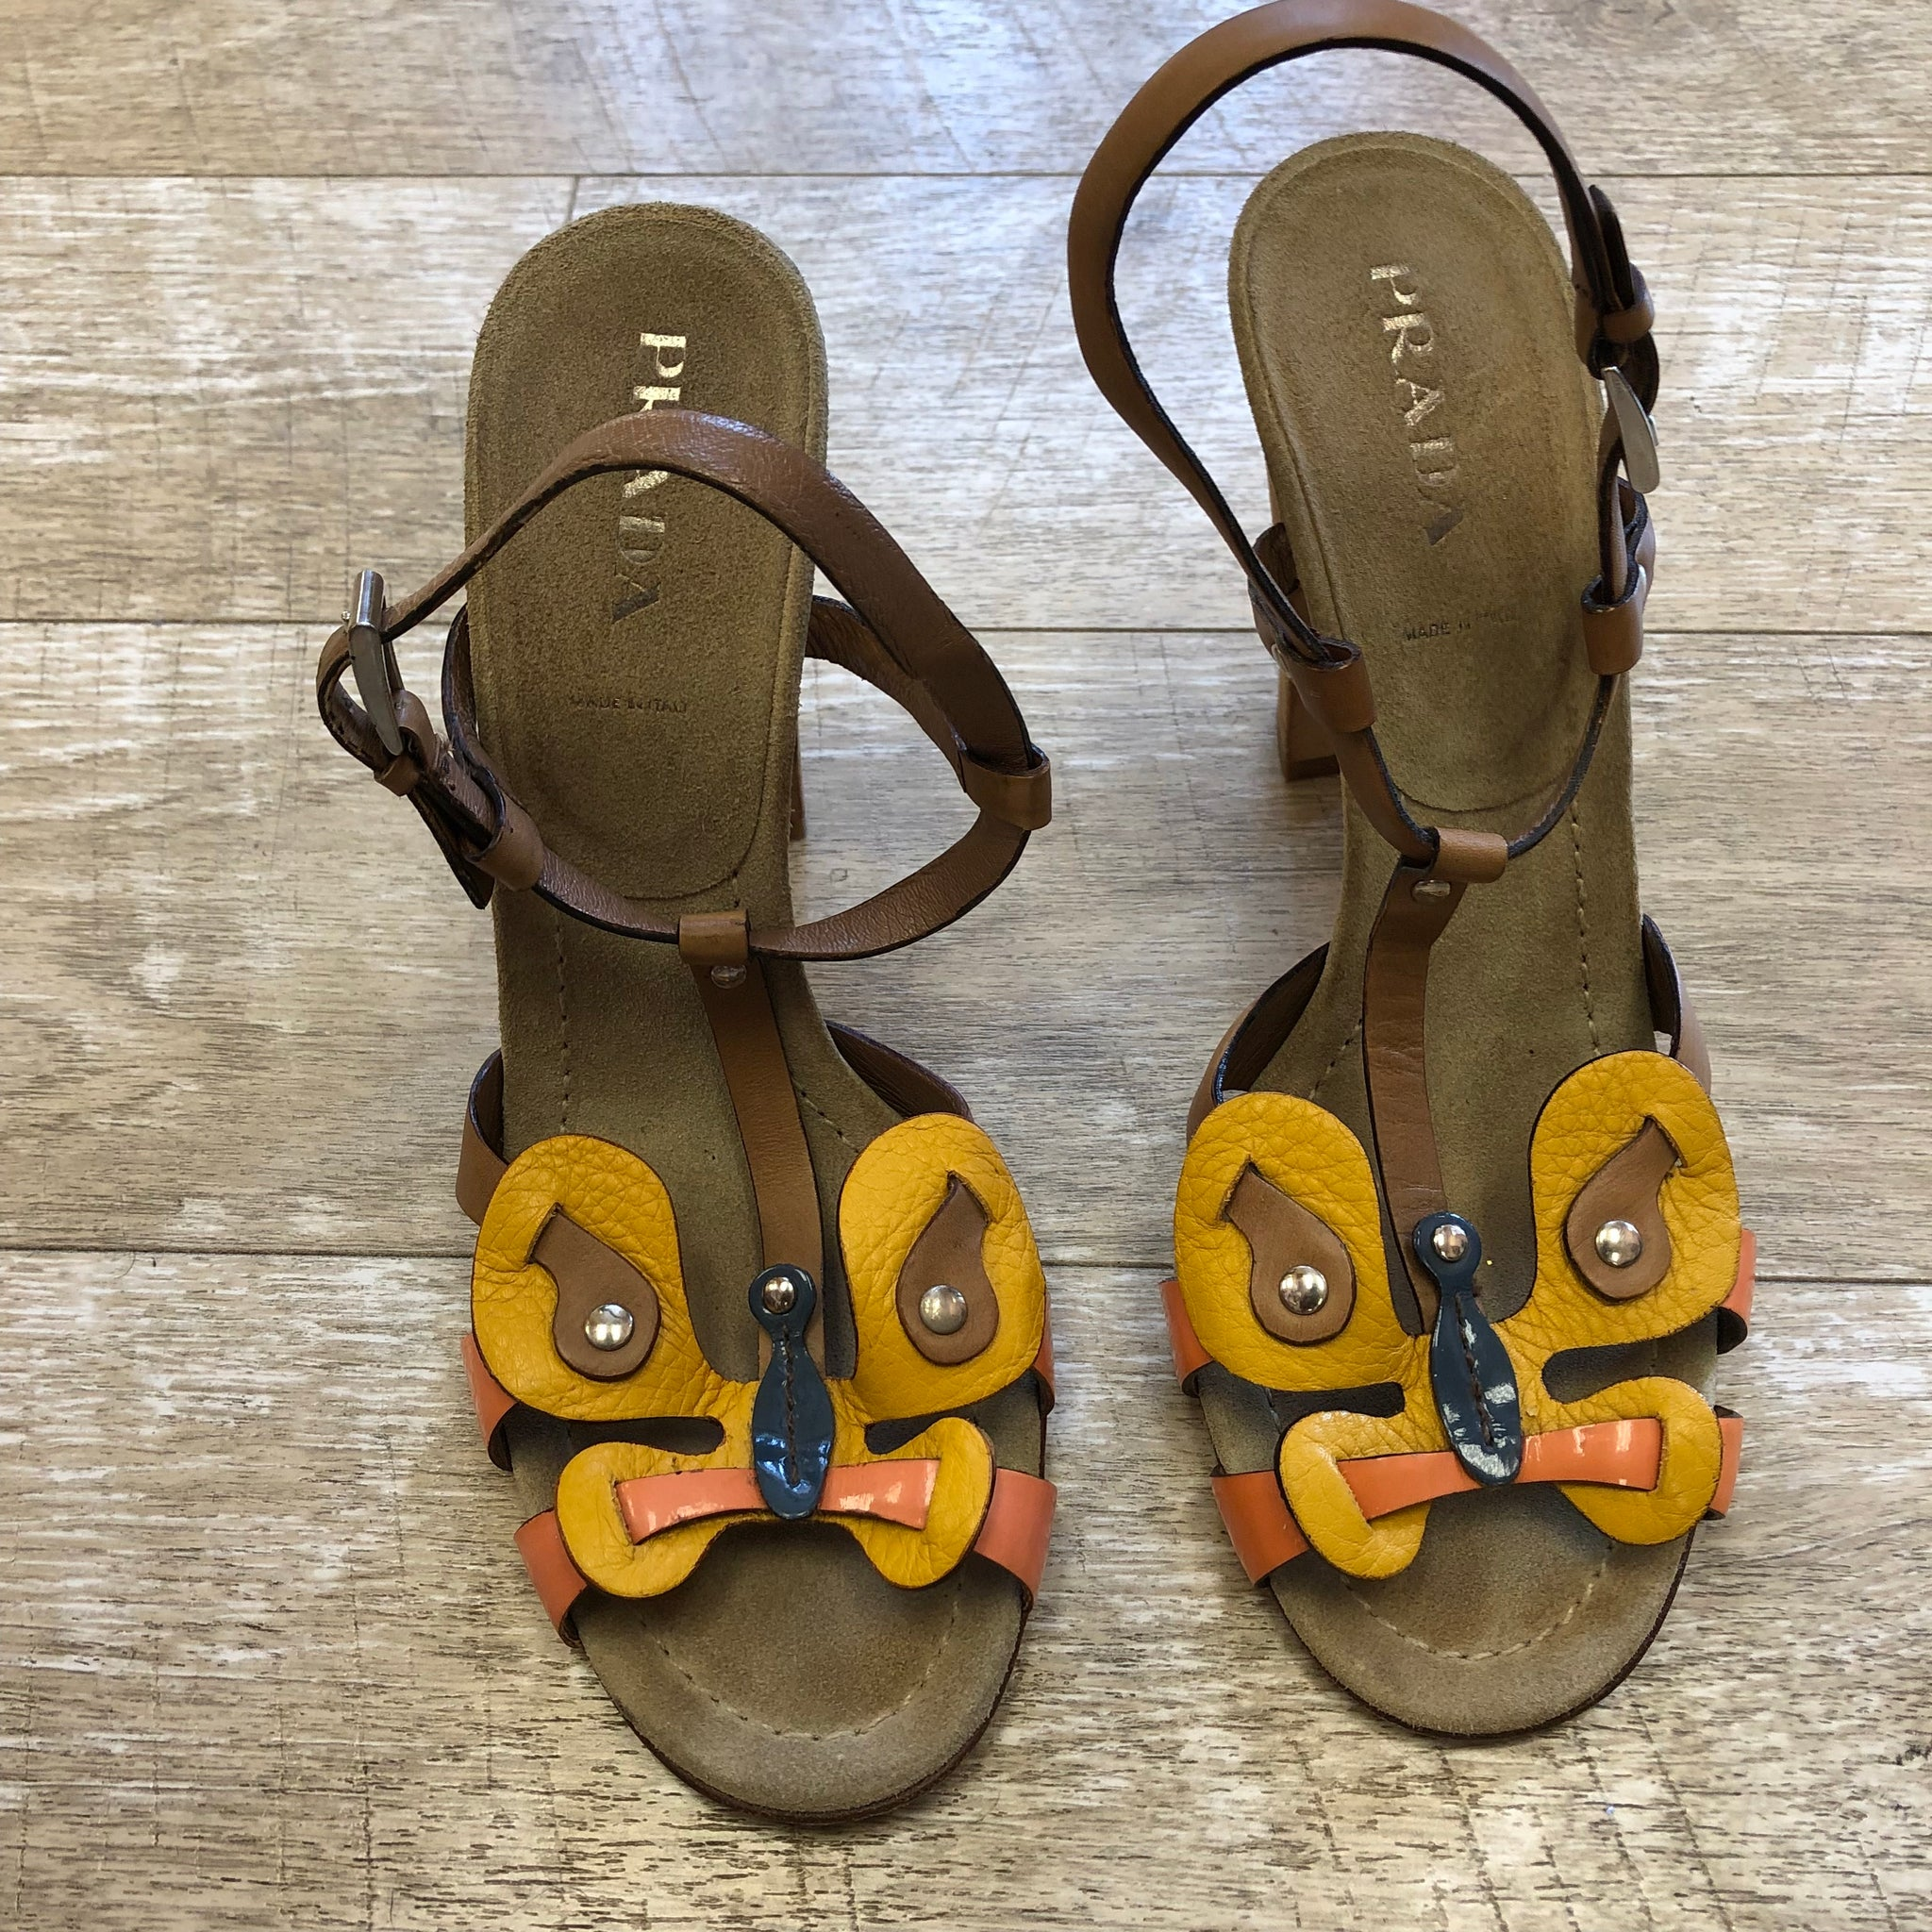 Prada Butterfly Sandals Size 37.5